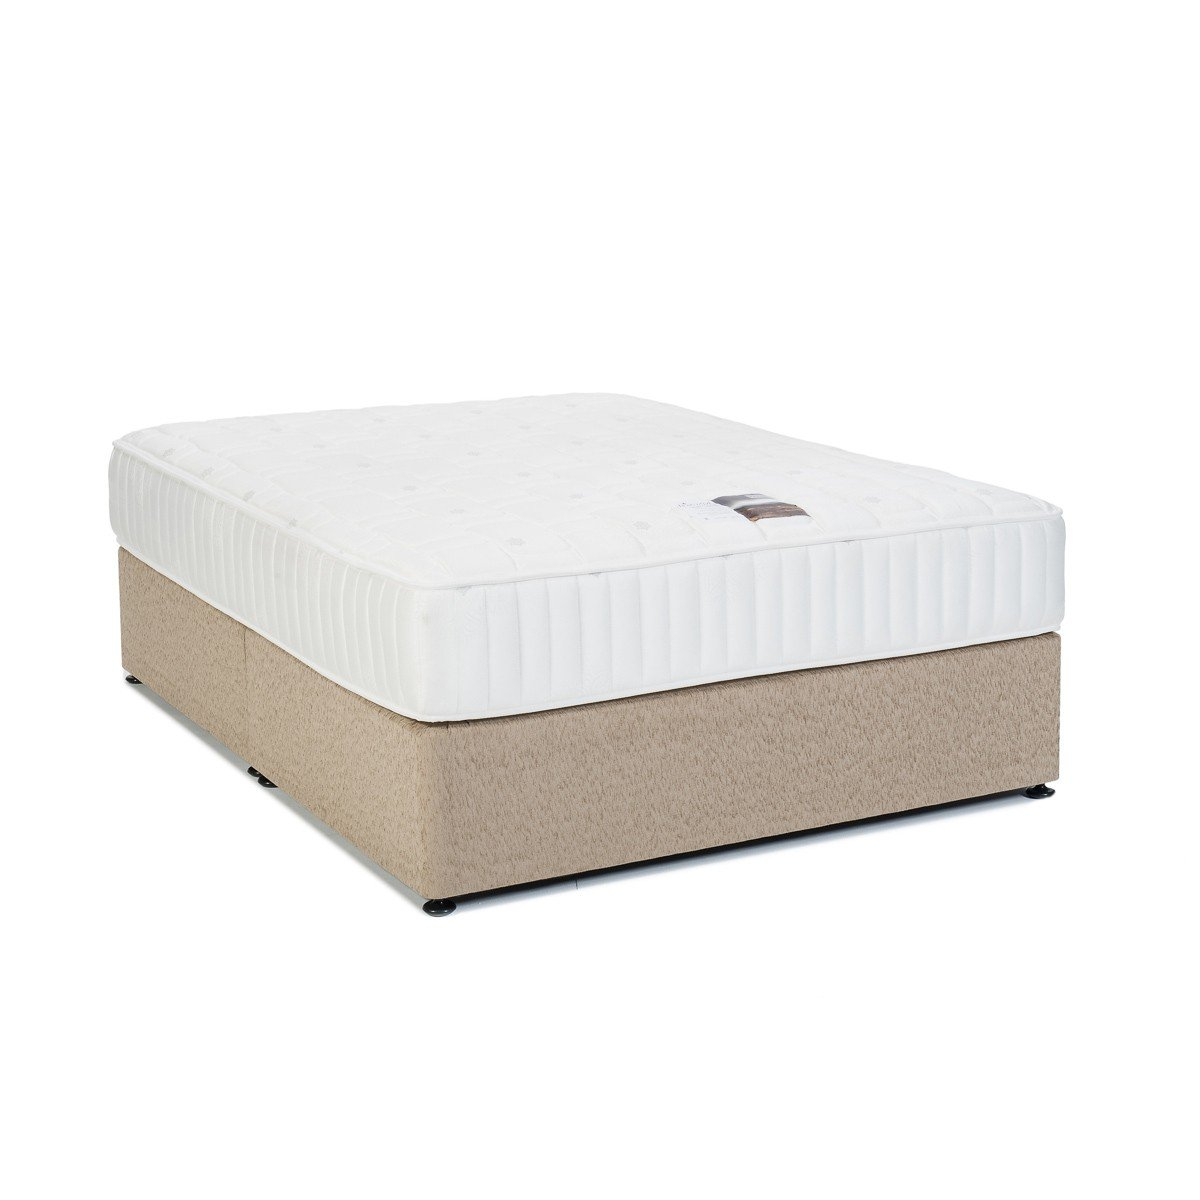 King Koil Natural Posture 1800 Mattress & Divan